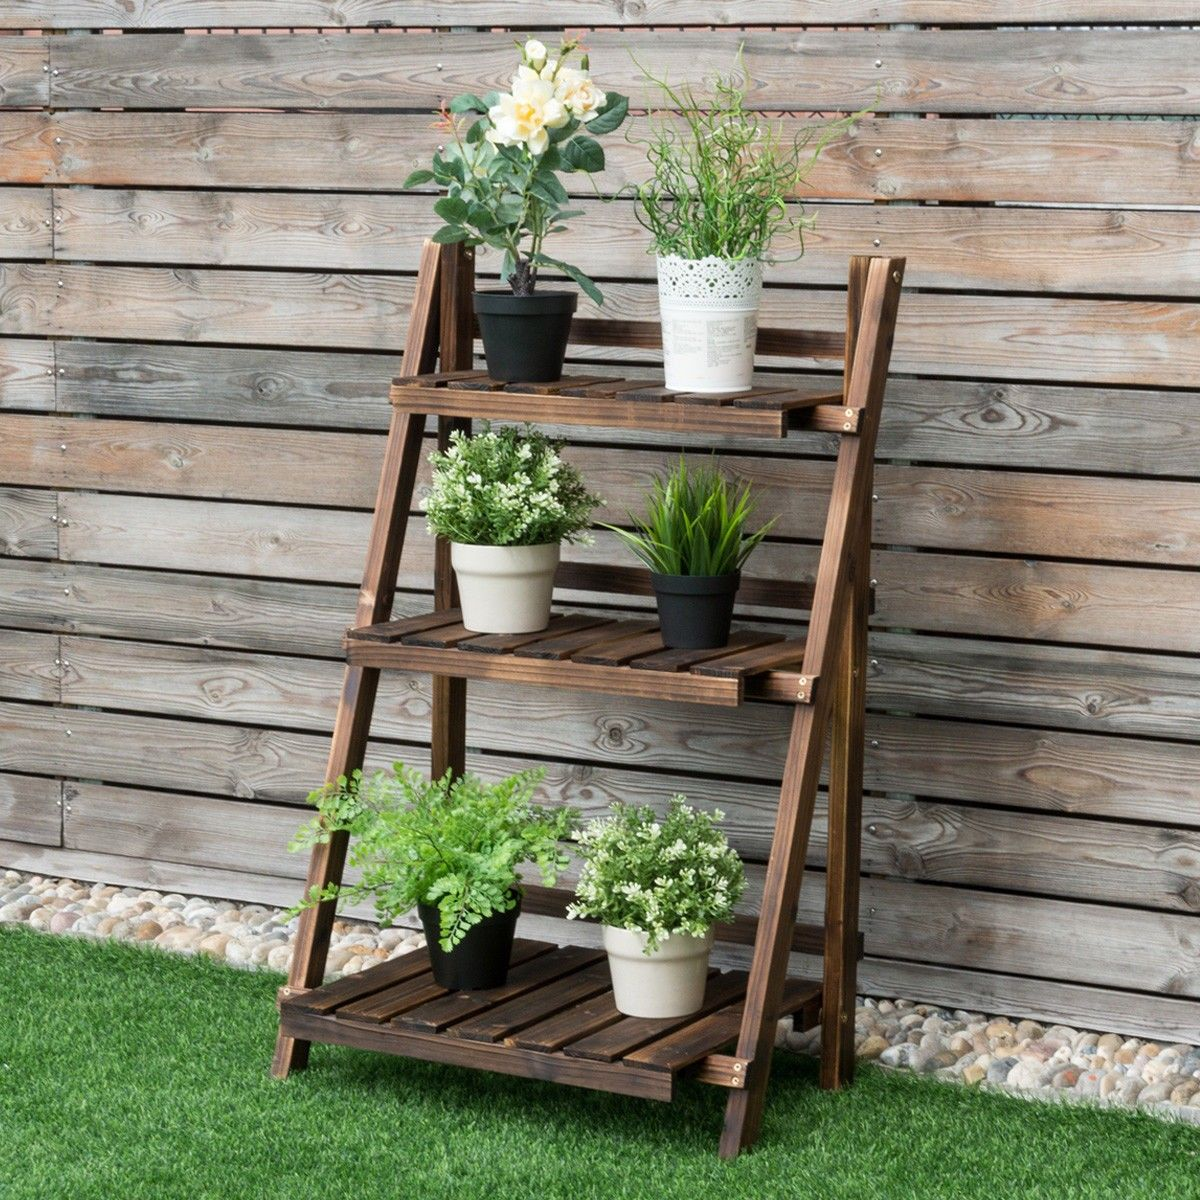 3 Tier Outdoor Wood Design Folding Display Flower Stand Wooden